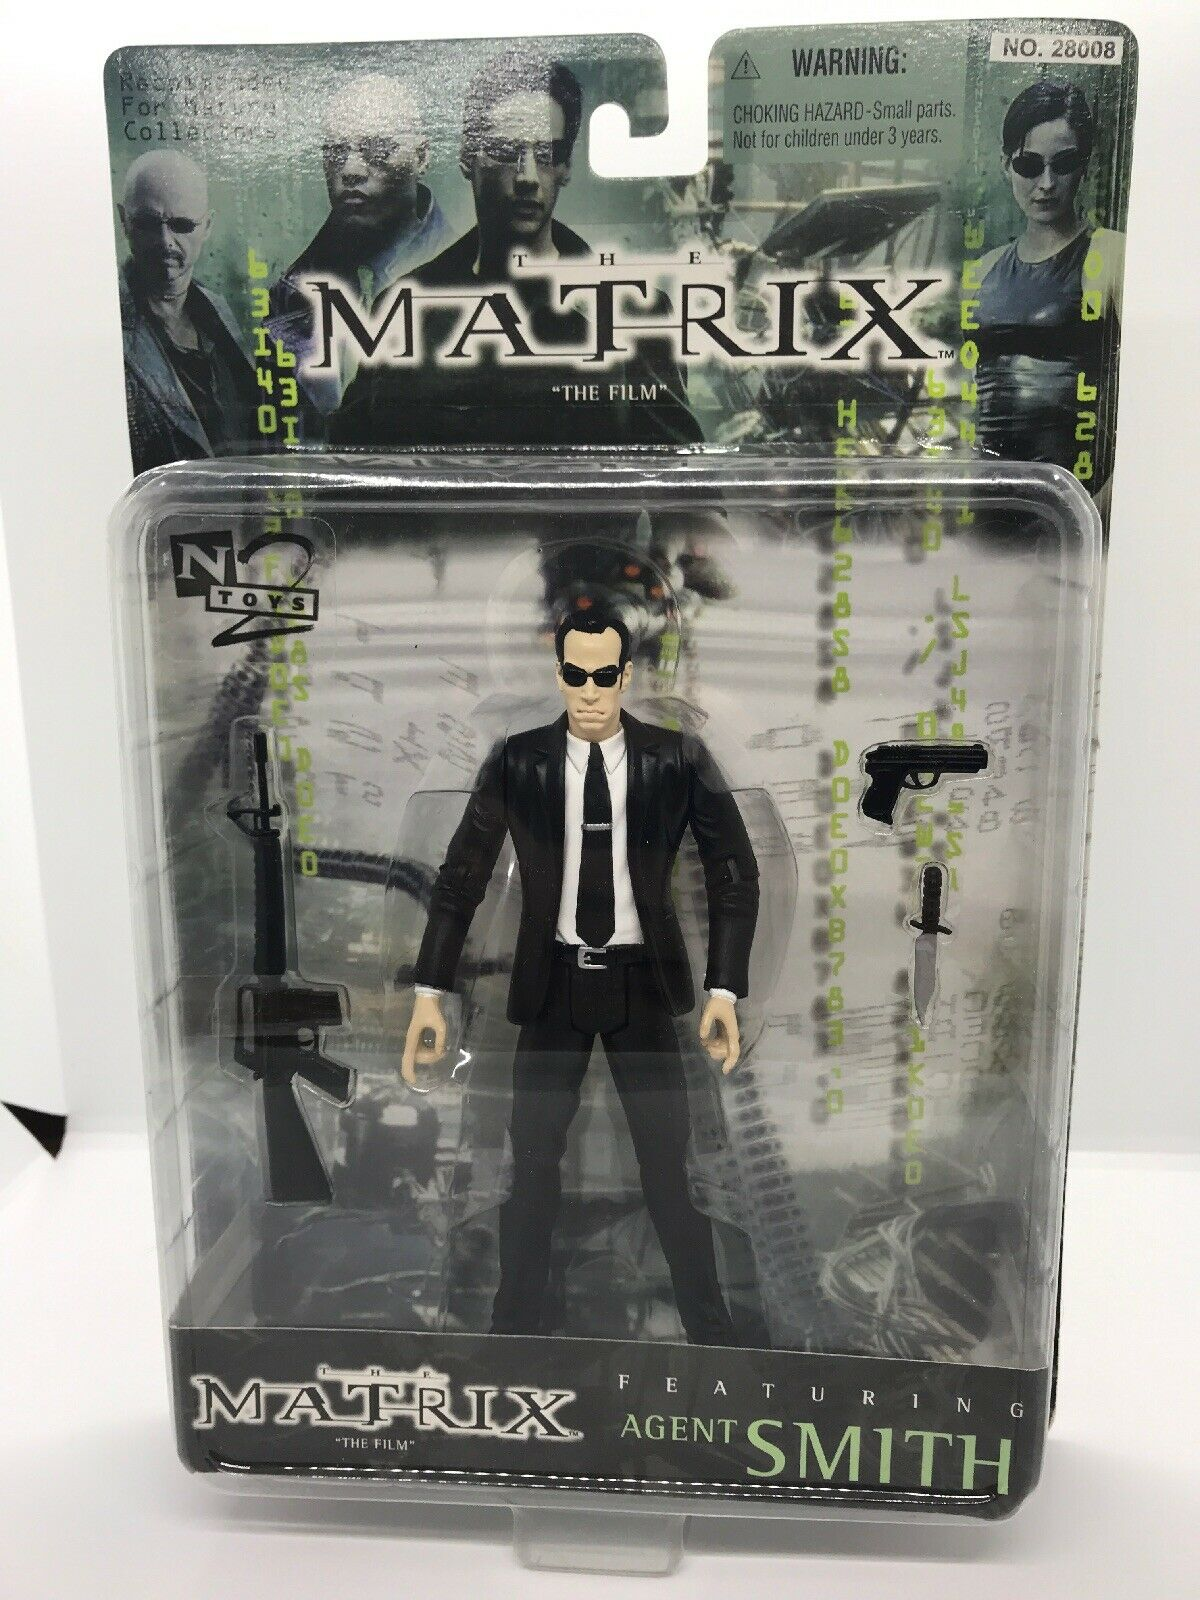 AGENT SMITH Action Figure THE MATRIX The Film N2 N2 N2 Toys 1999 37b0a6